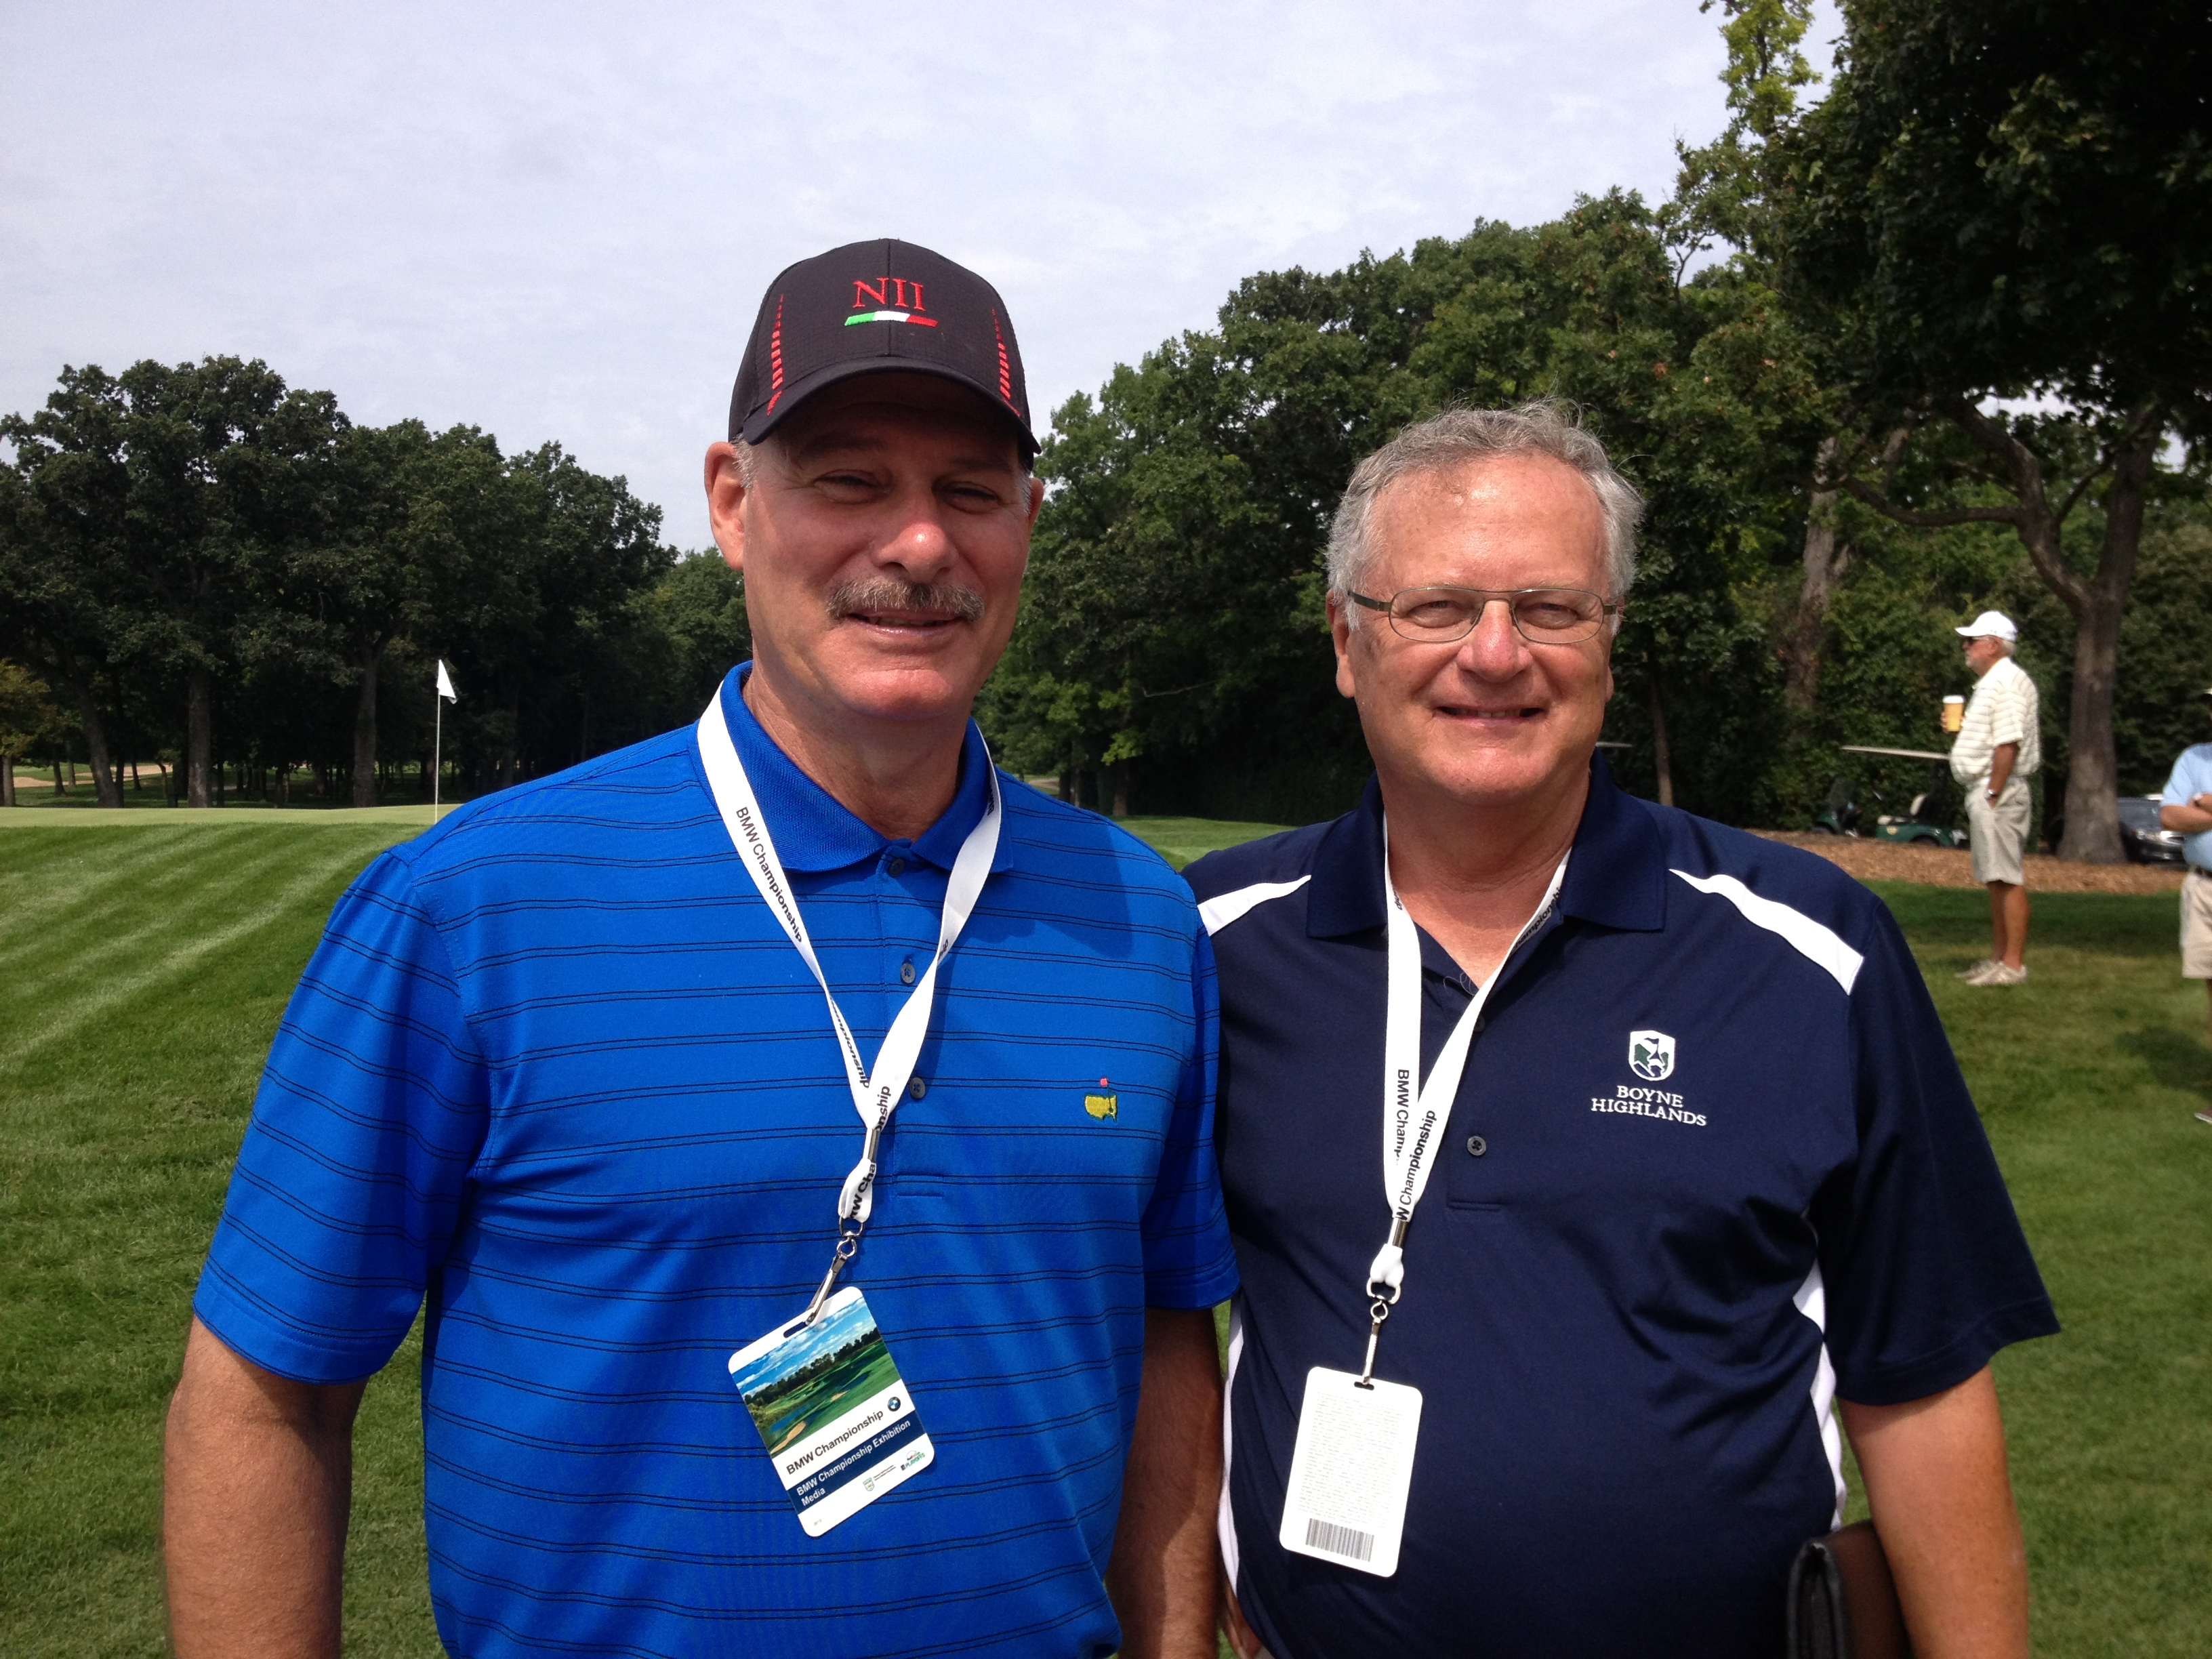 With Gary D'Amato, long-time golf writer for the Milwuakee Journal Sentinel and captain of Team Wisconsin the annual Writers Cup.